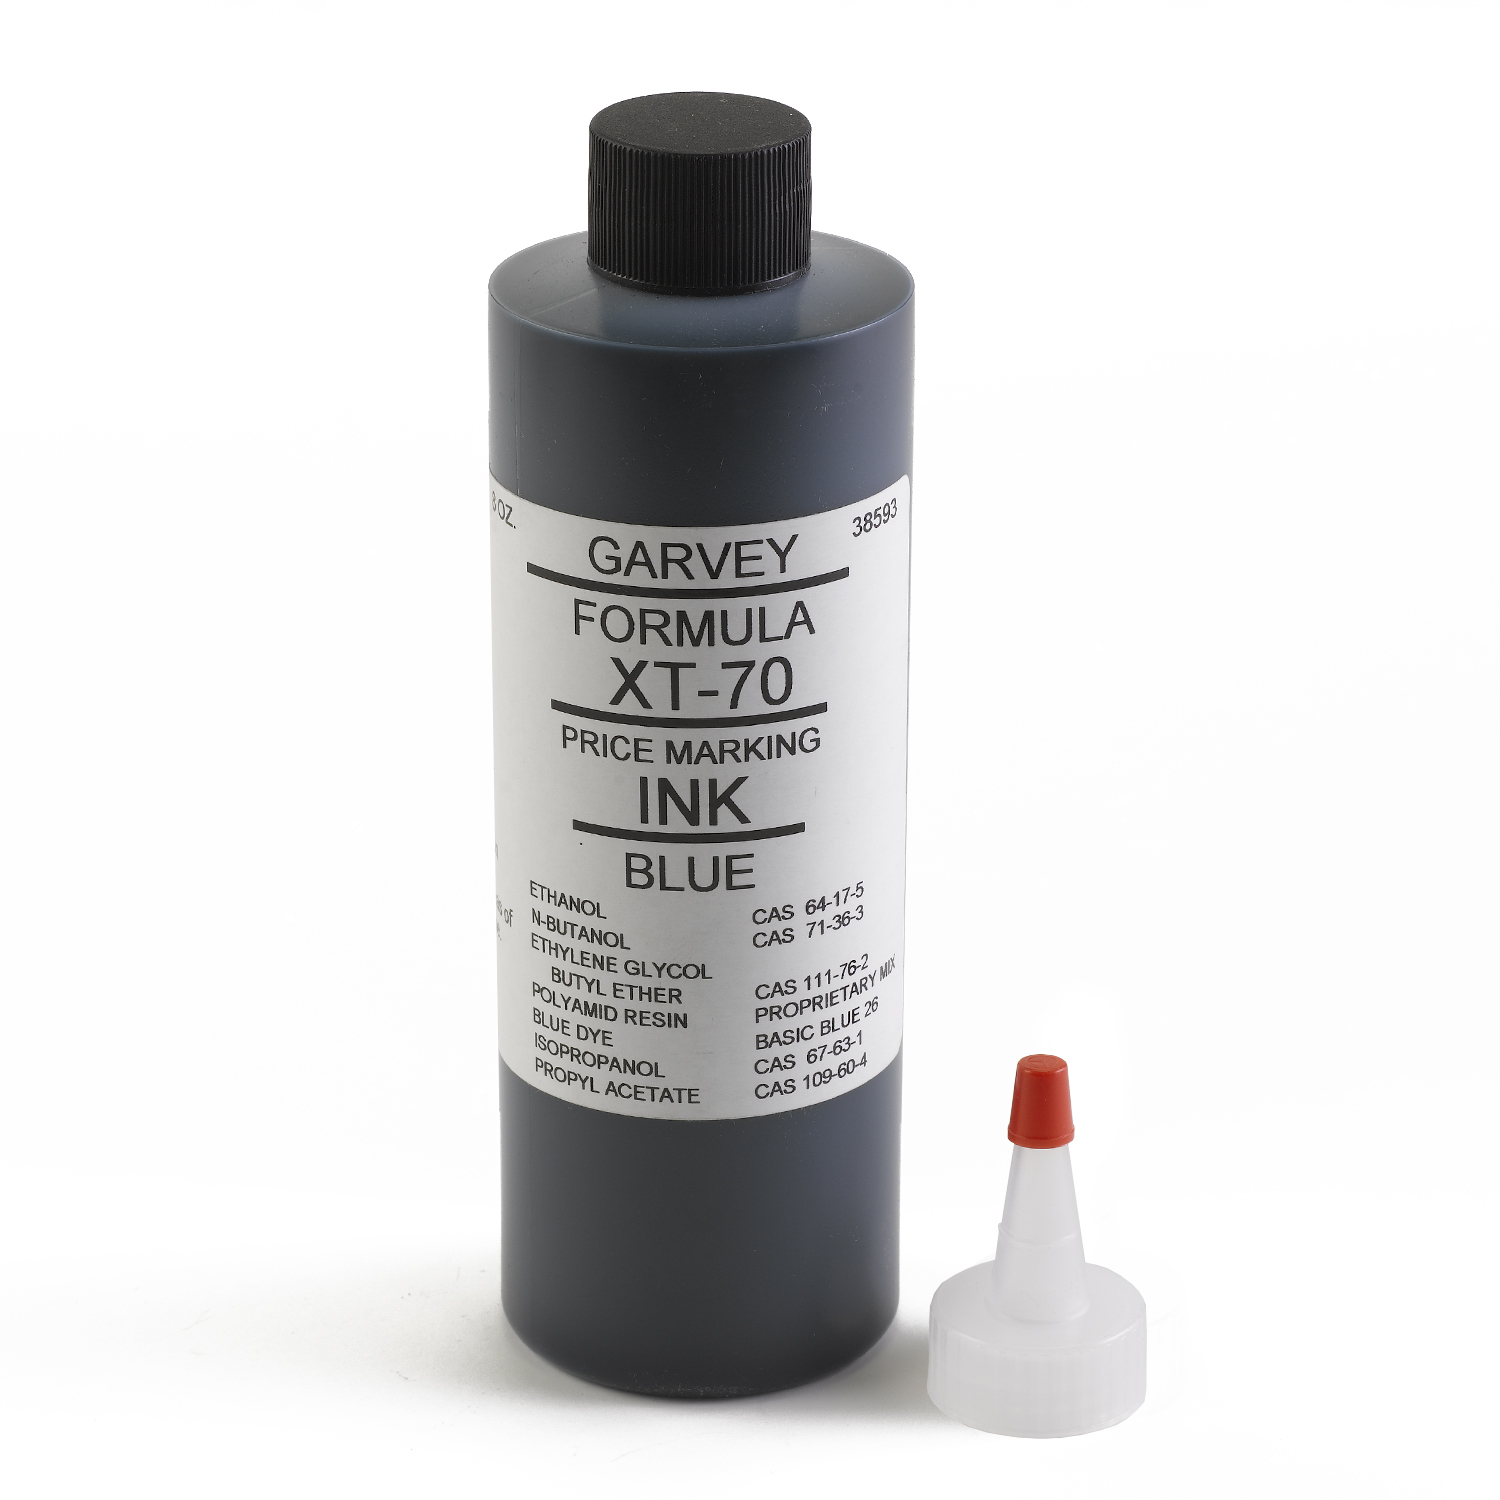 Garvey Blue Price Marking Ink 8 oz - INK-38593